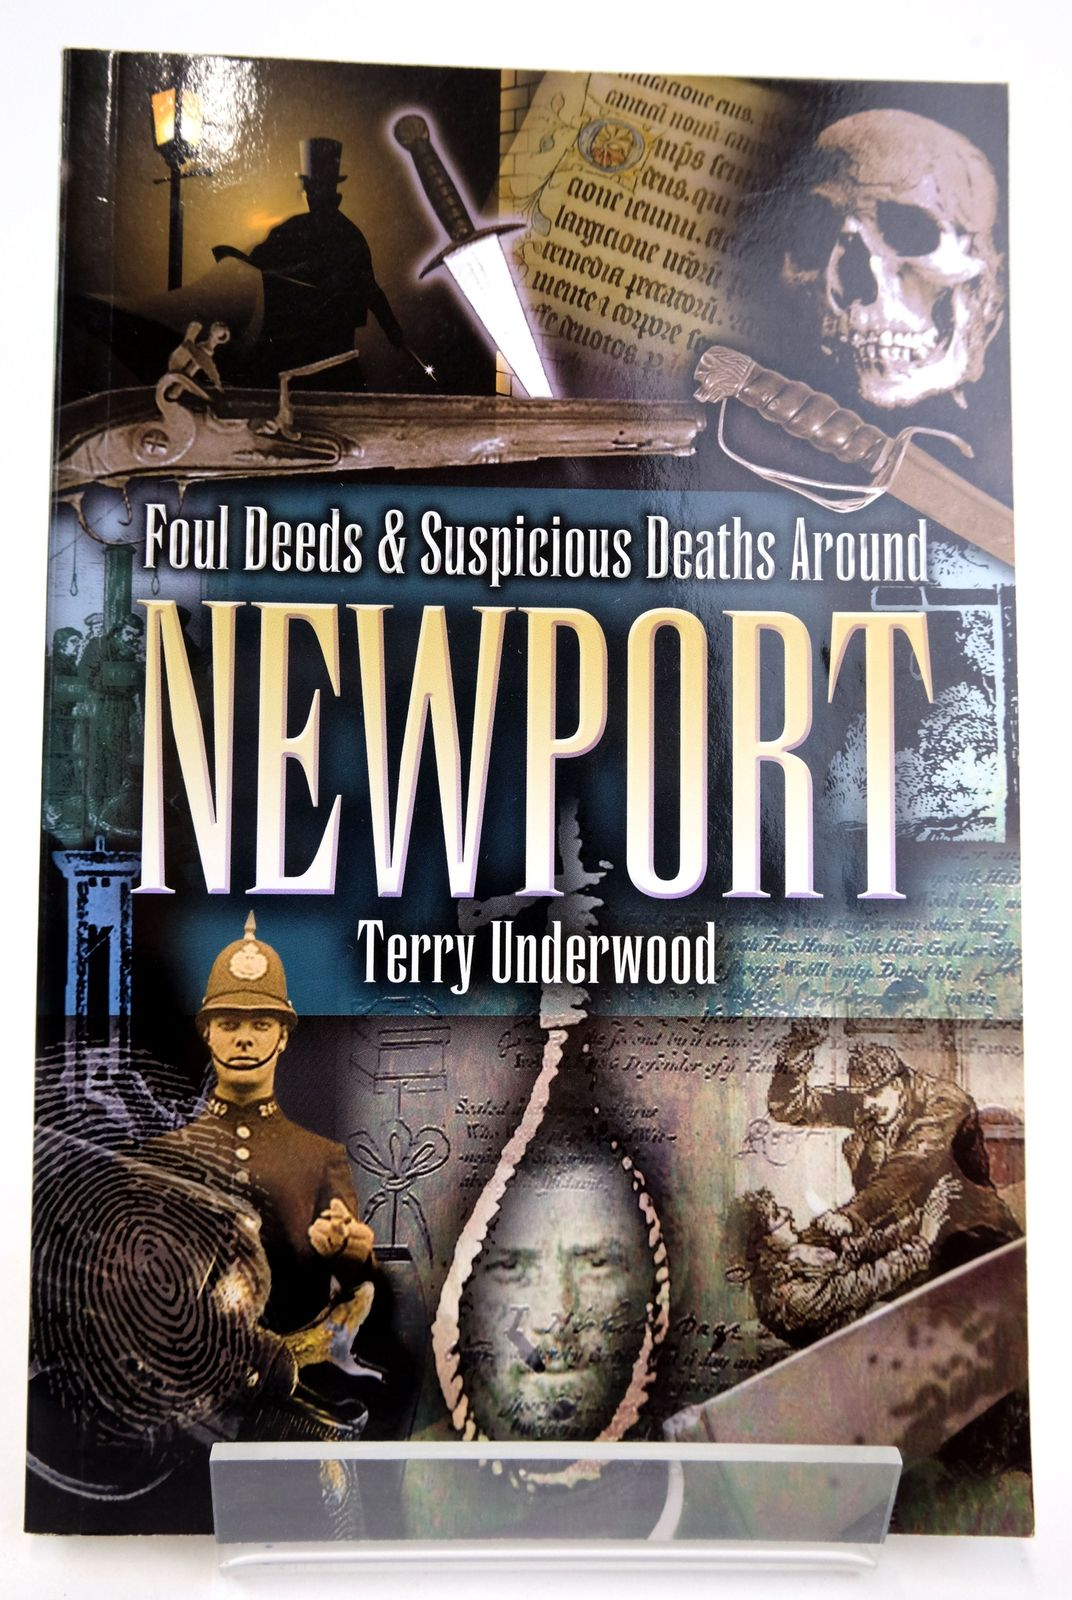 Photo of FOUL DEEDS & SUSPICIOUS DEATHS AROUND NEWPORT written by Underwood, Terry published by Wharncliffe Books (STOCK CODE: 1819178)  for sale by Stella & Rose's Books